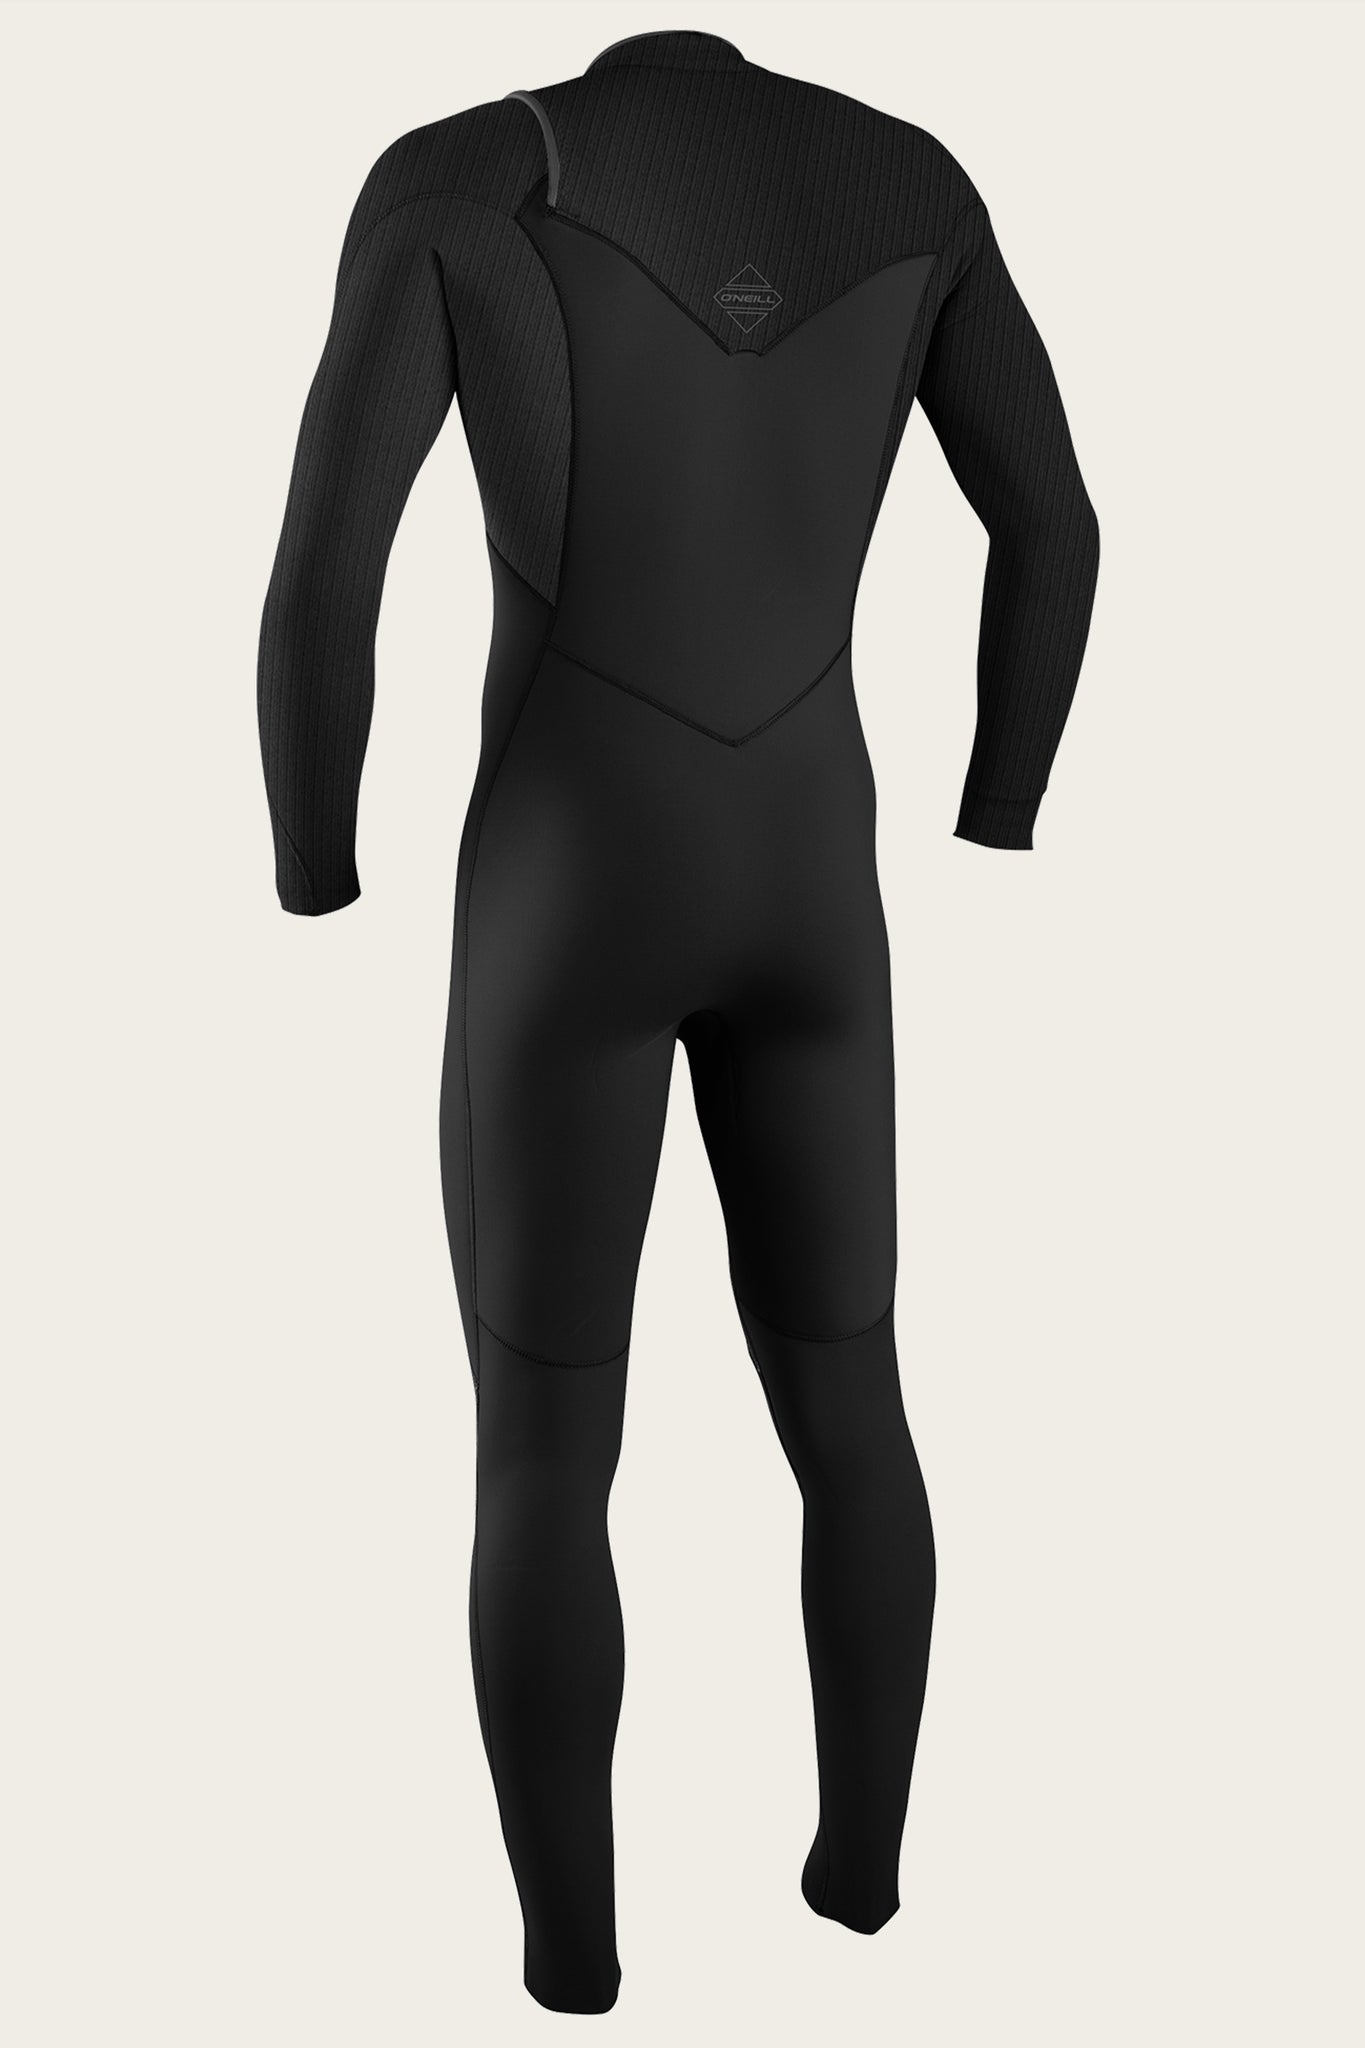 Hyperfreak 3/2+Mm Chest Zip Full Wetsuit - Black/Black | O'Neill